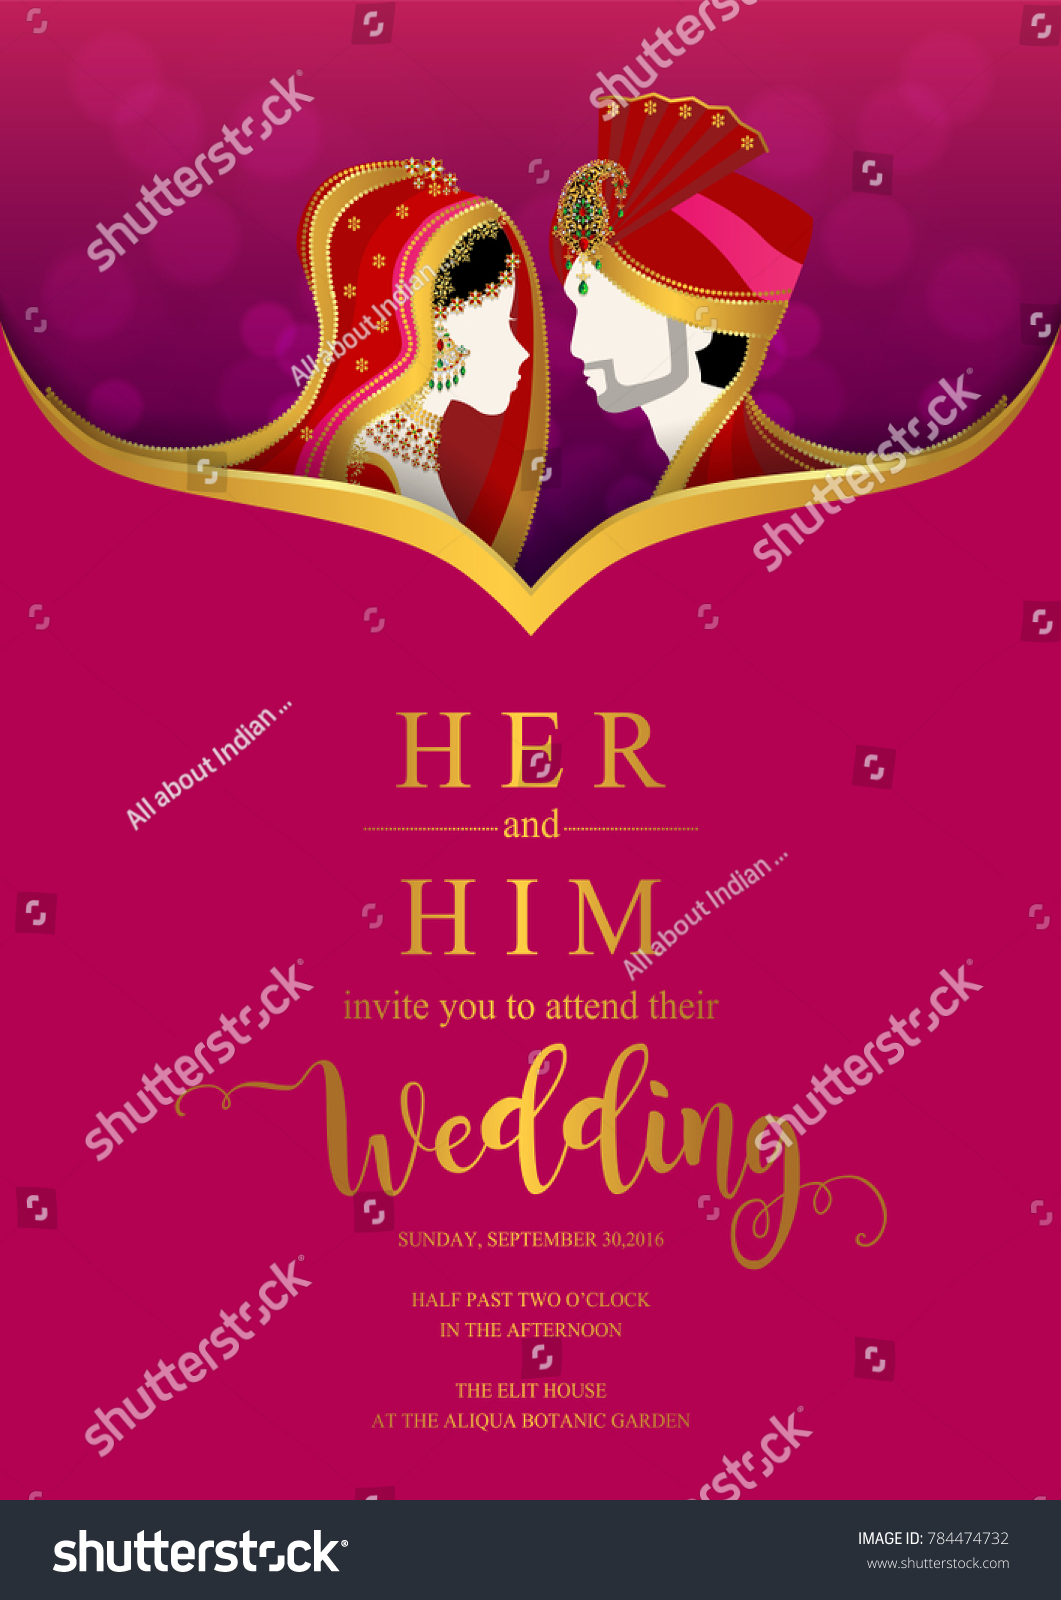 Indian Wedding Invitation Card Templates Gold Stock Vector 784474732 ...